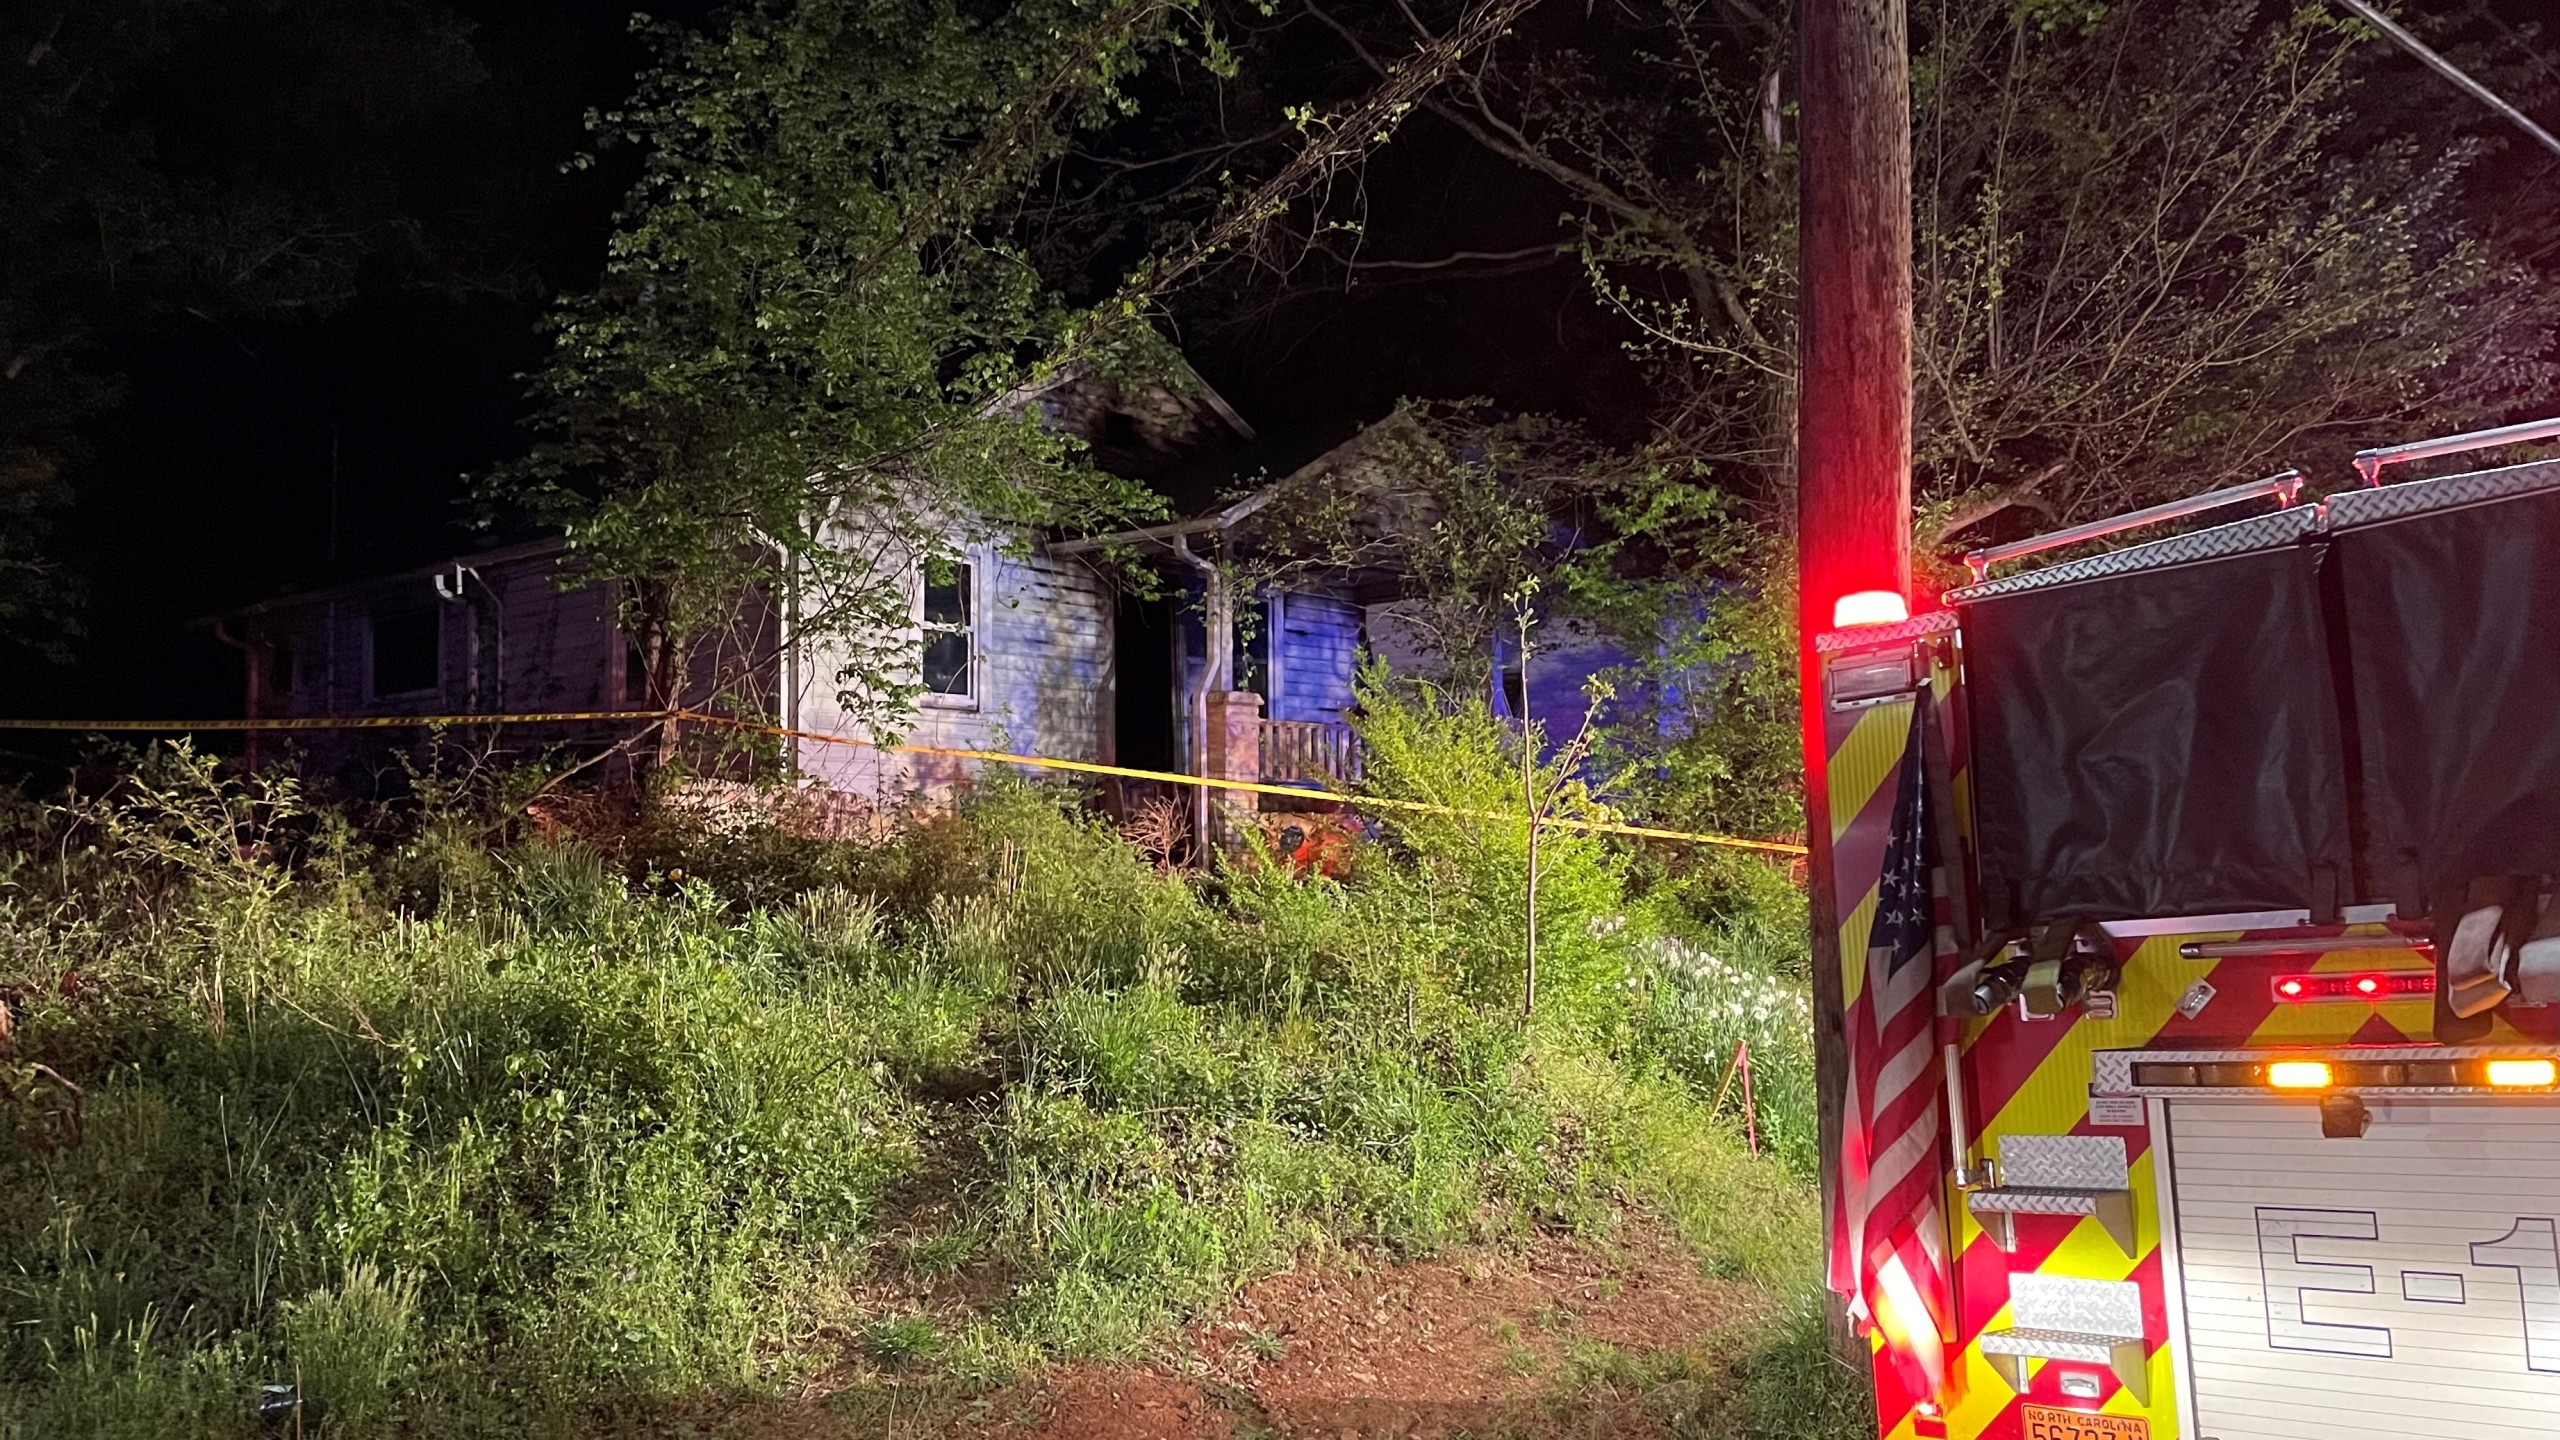 Fire on Cotton Grove Road in Lexington.(City of Lexington Fire Department)